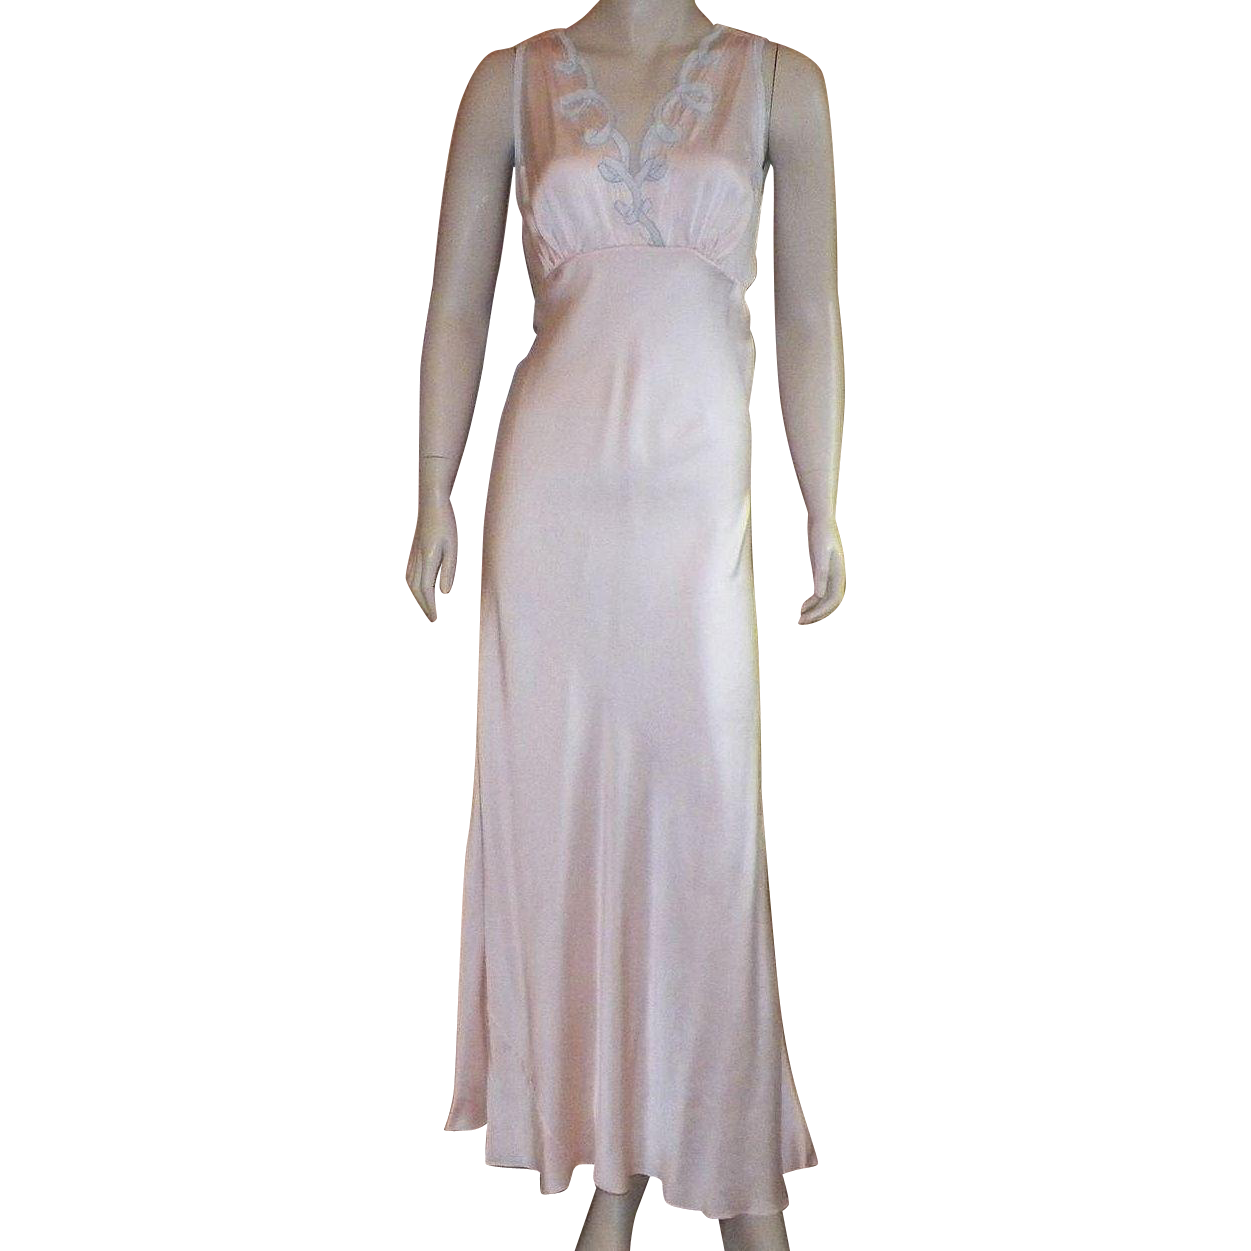 Vintage 1920's Silk Light Peach Bias Cut Nightgown With Light Blue Applique